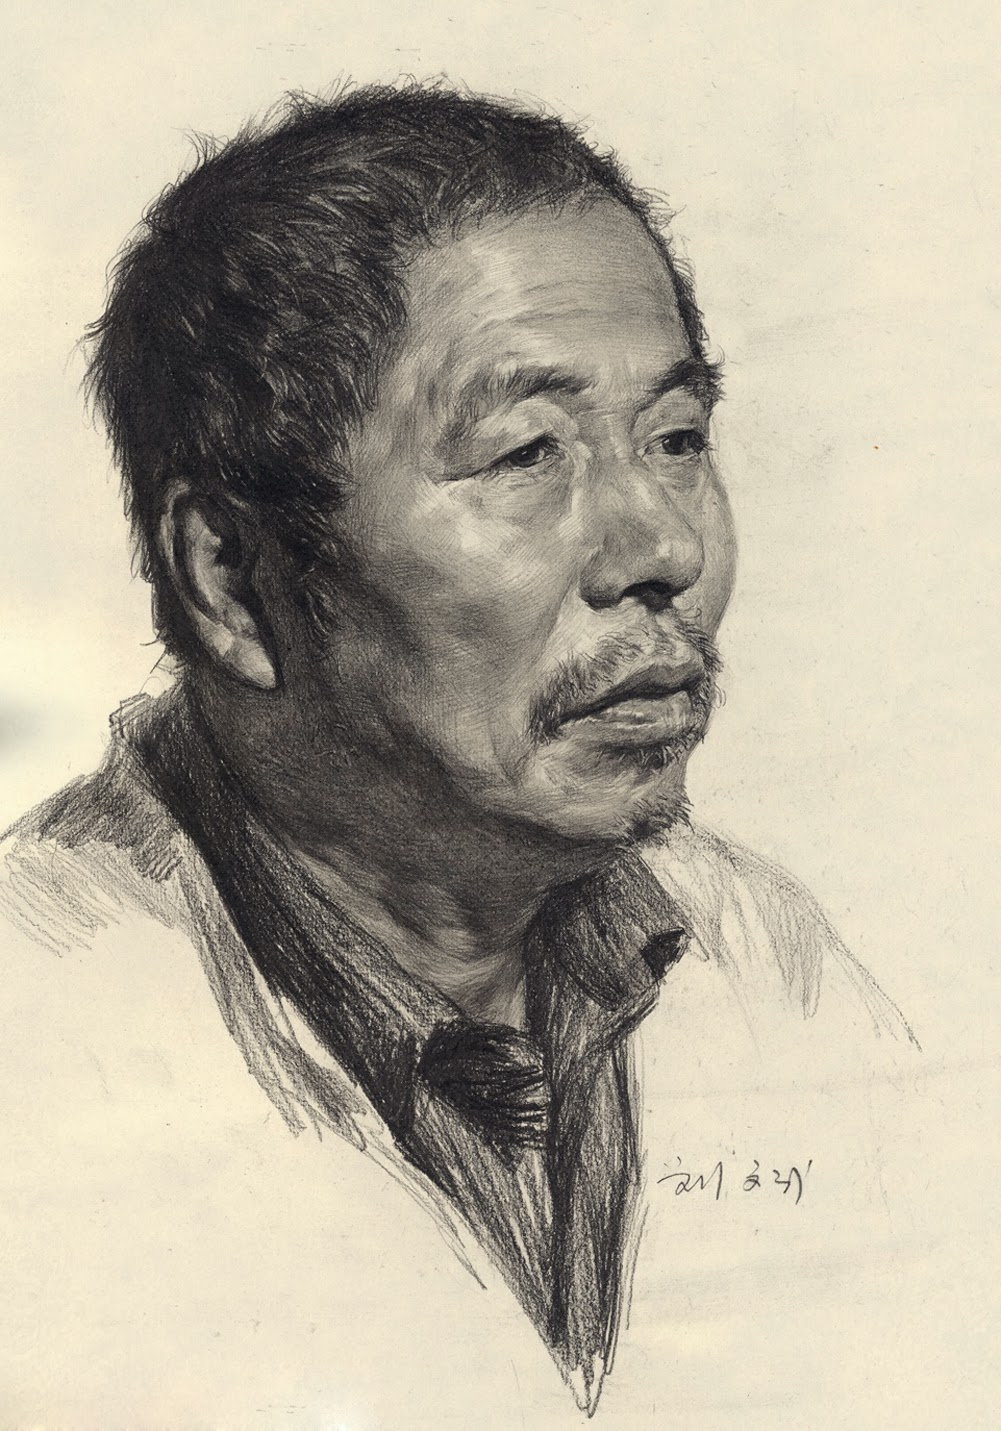 Portrait Drawing with Pencil - How To Draw Library